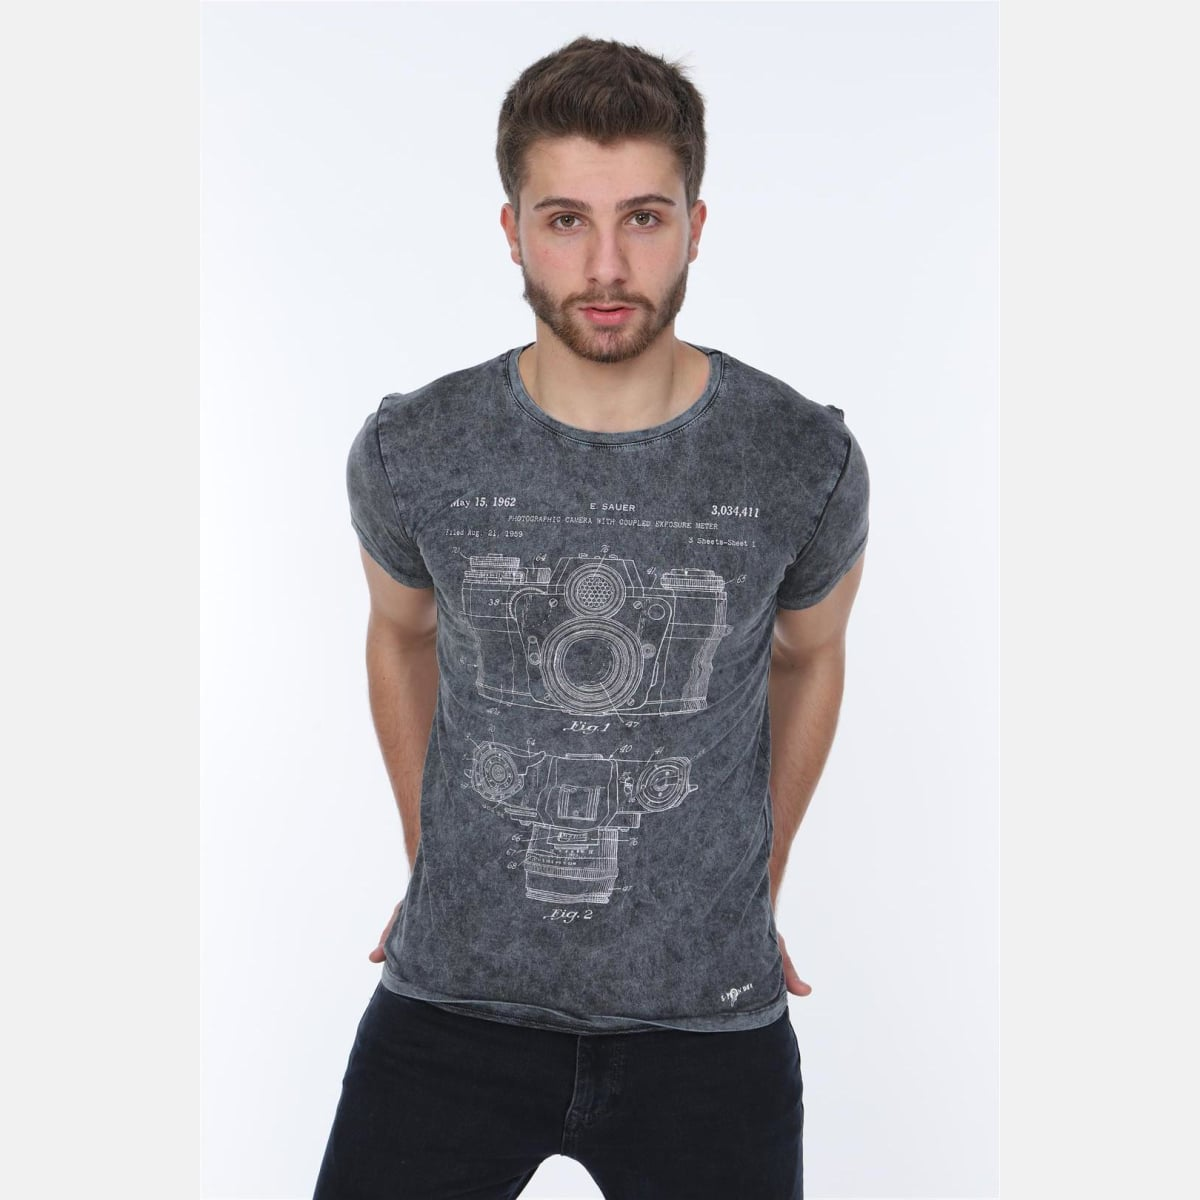 S-Ponder Anthracite Stone Washed Camera Patent Printed Cotton T-shirt Tee Top